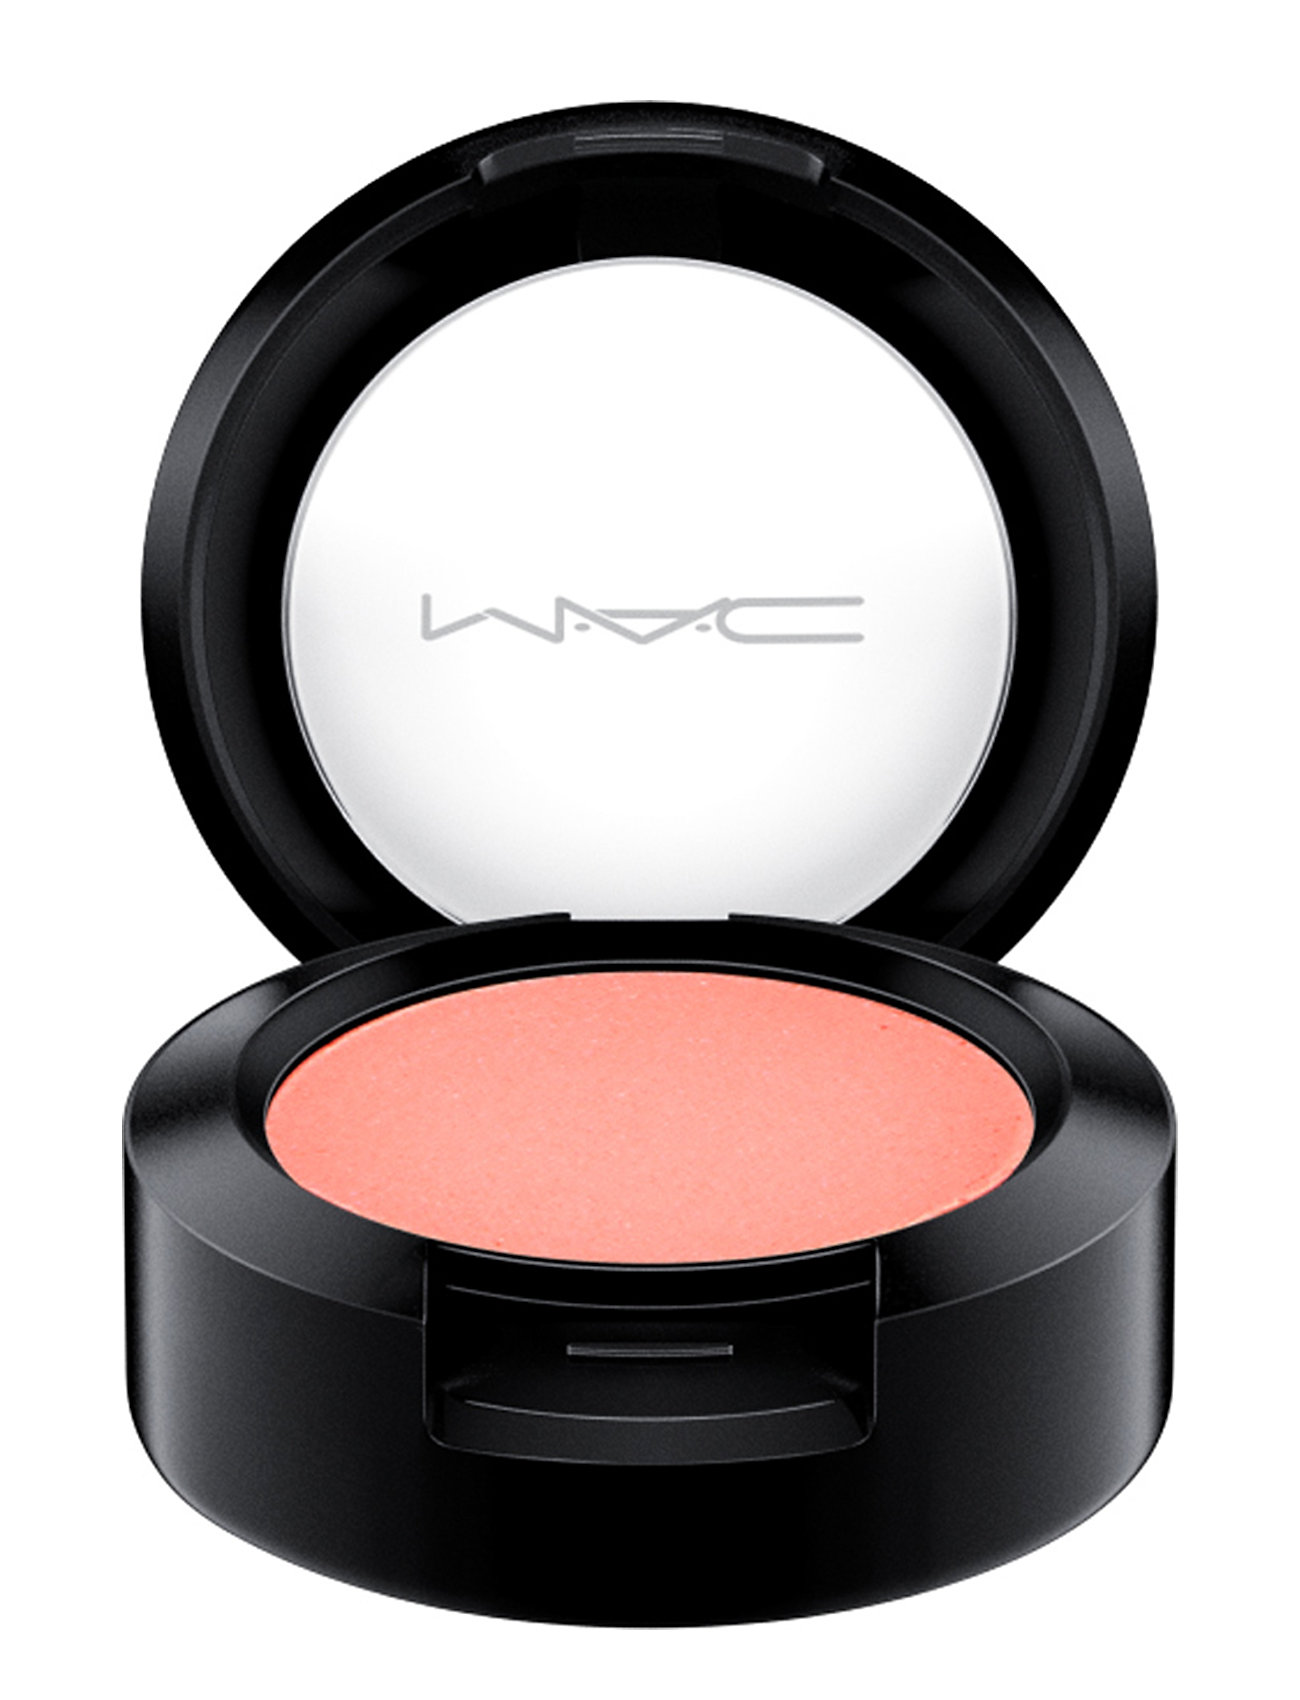 Image of Small Eye Shadow Beauty WOMEN Makeup Eyes Eyeshadow - Not Palettes Blå M.A.C. (3260672959)